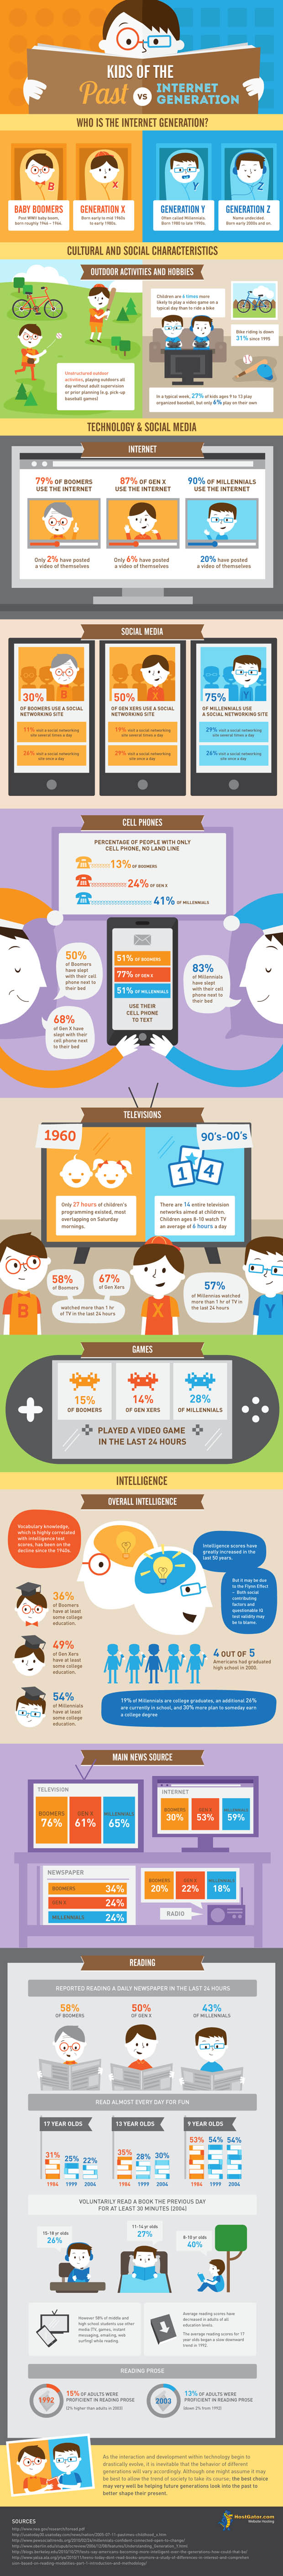 kids-of-the-past-vs-internet-generation-infographic